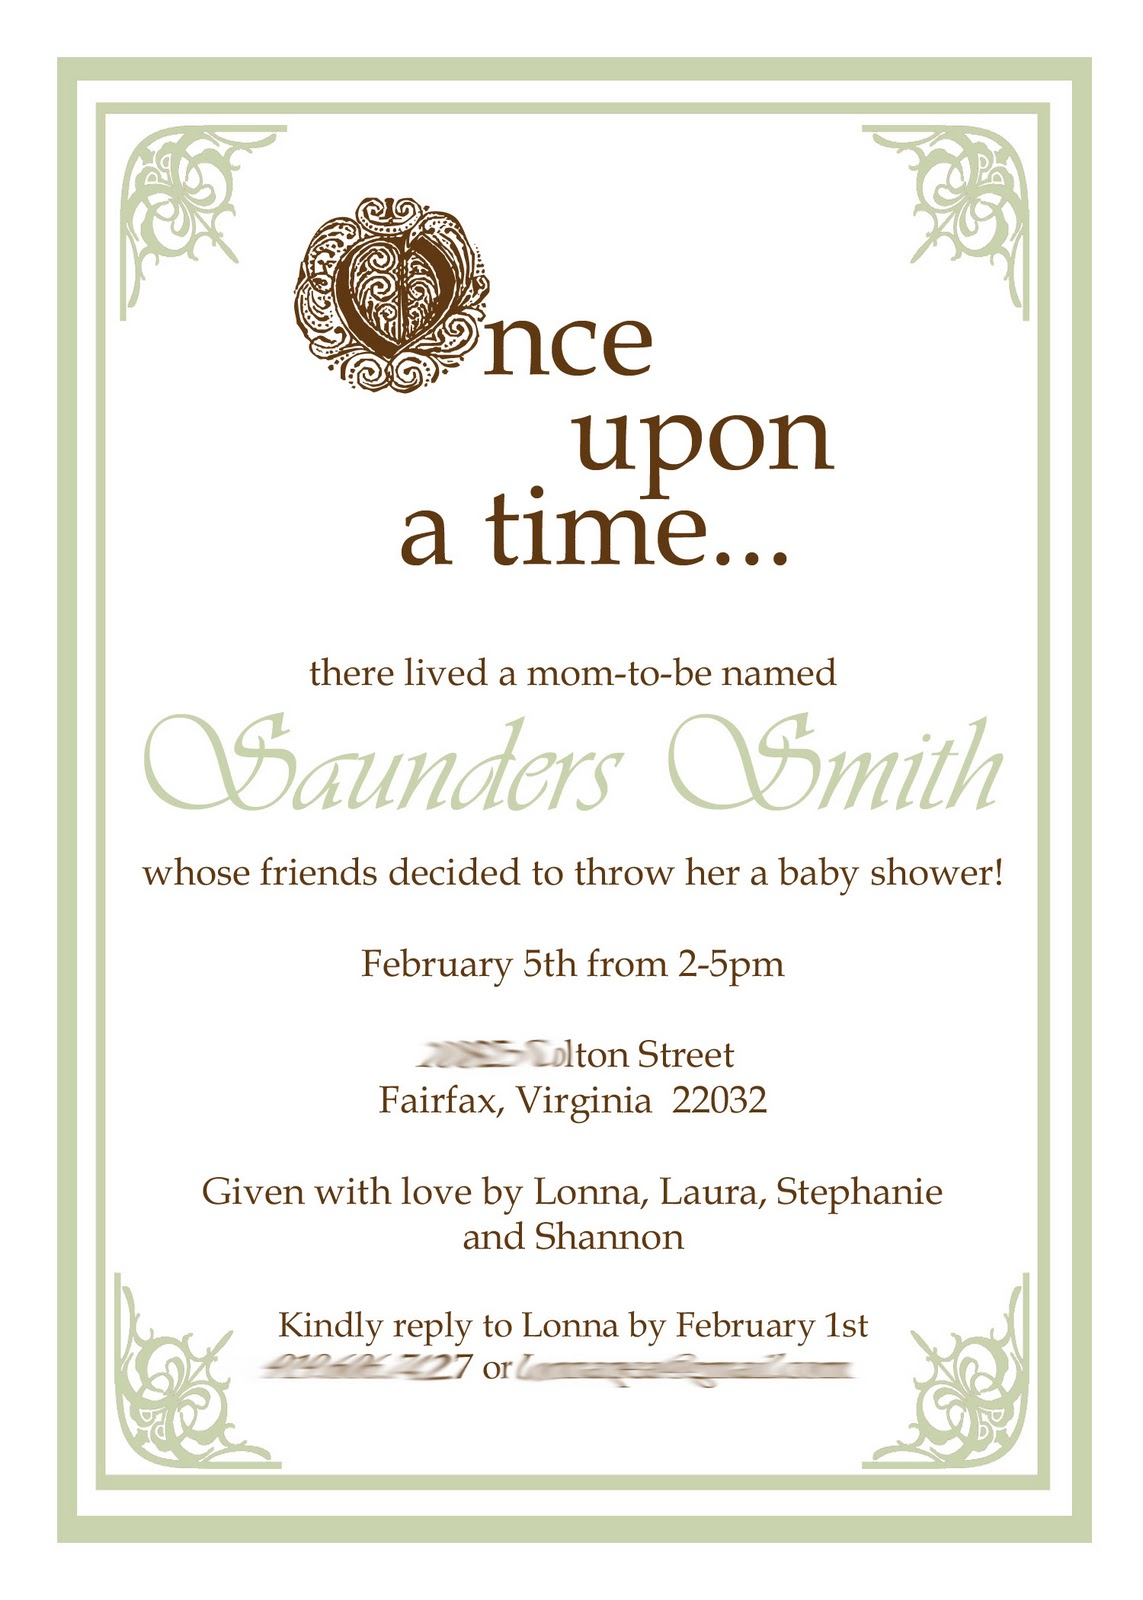 Little Bit Creations January 2011 Once Upon A Time Baby Shower Invite Blog  2011 01 01 Archivehtml Once Upon A Time Baby Shower Invitations